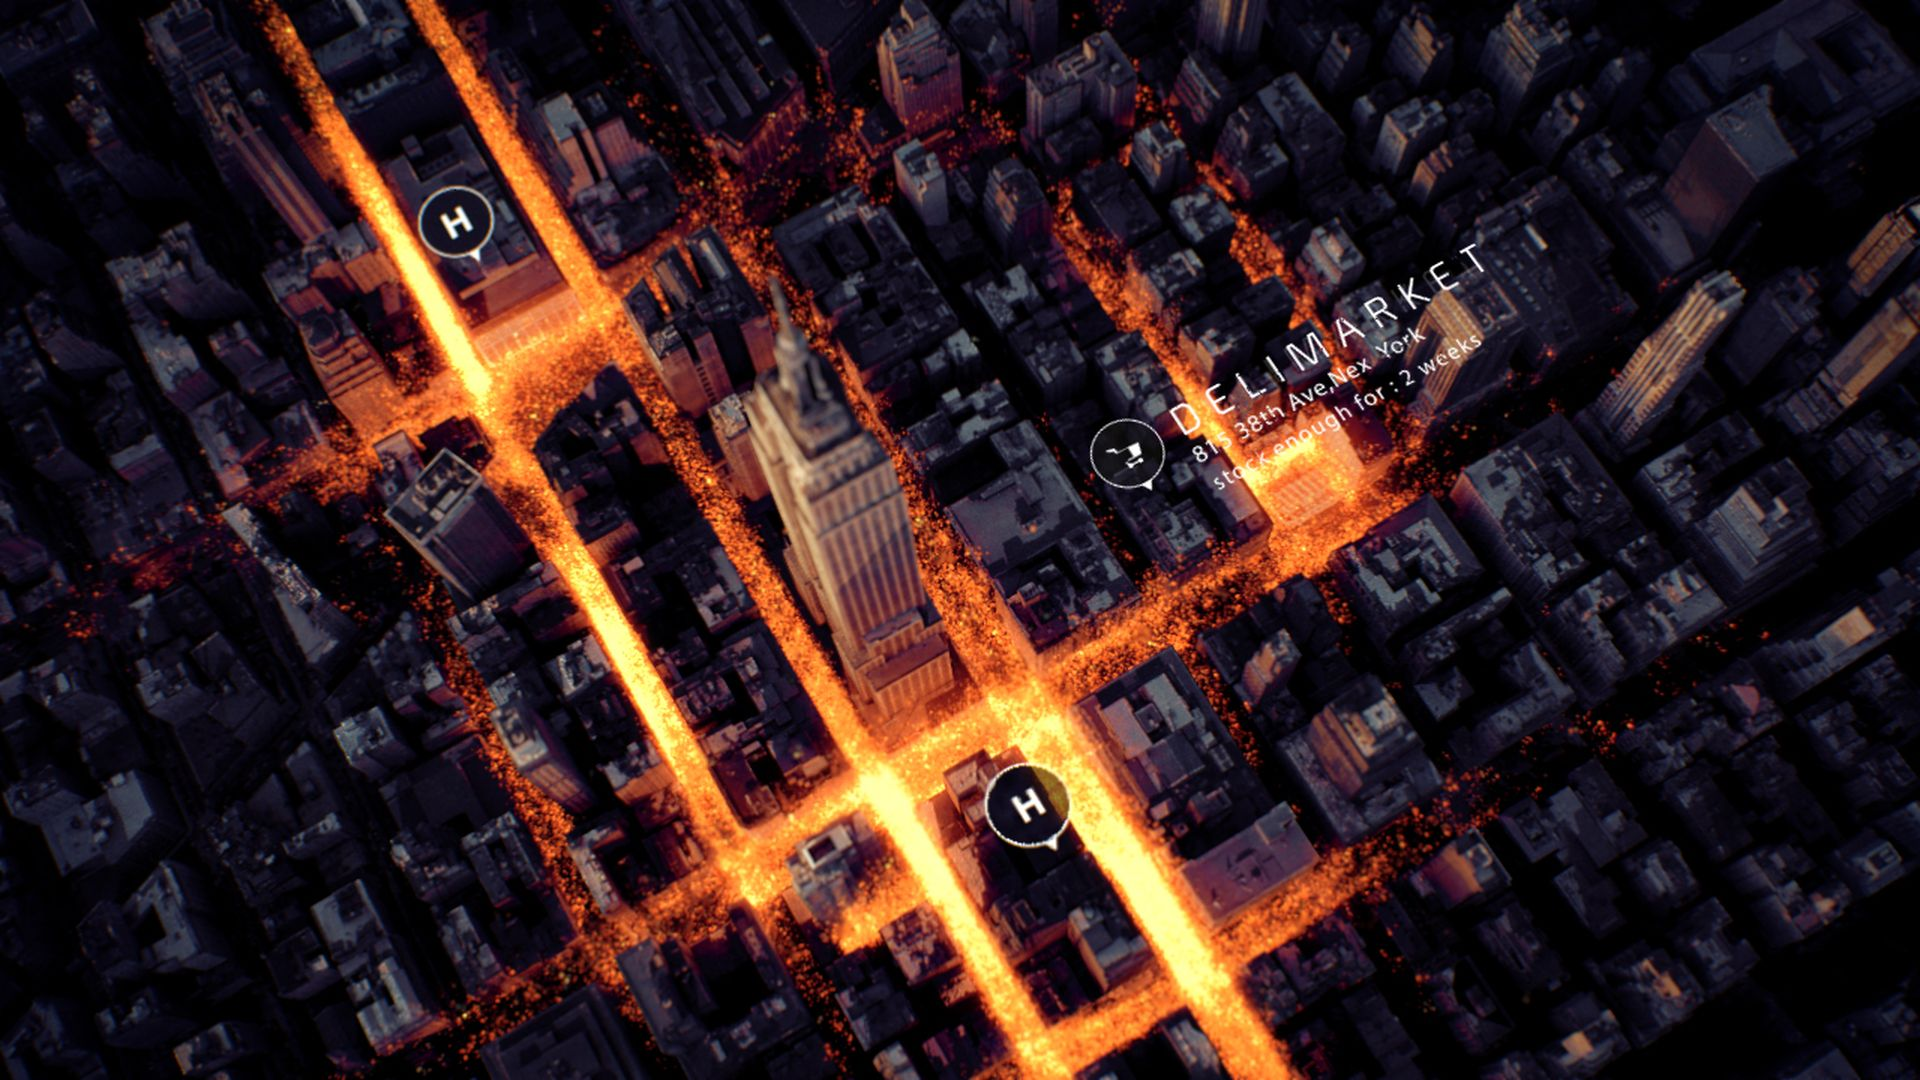 3D render of New York with luminous particles simulation spreading into the streets